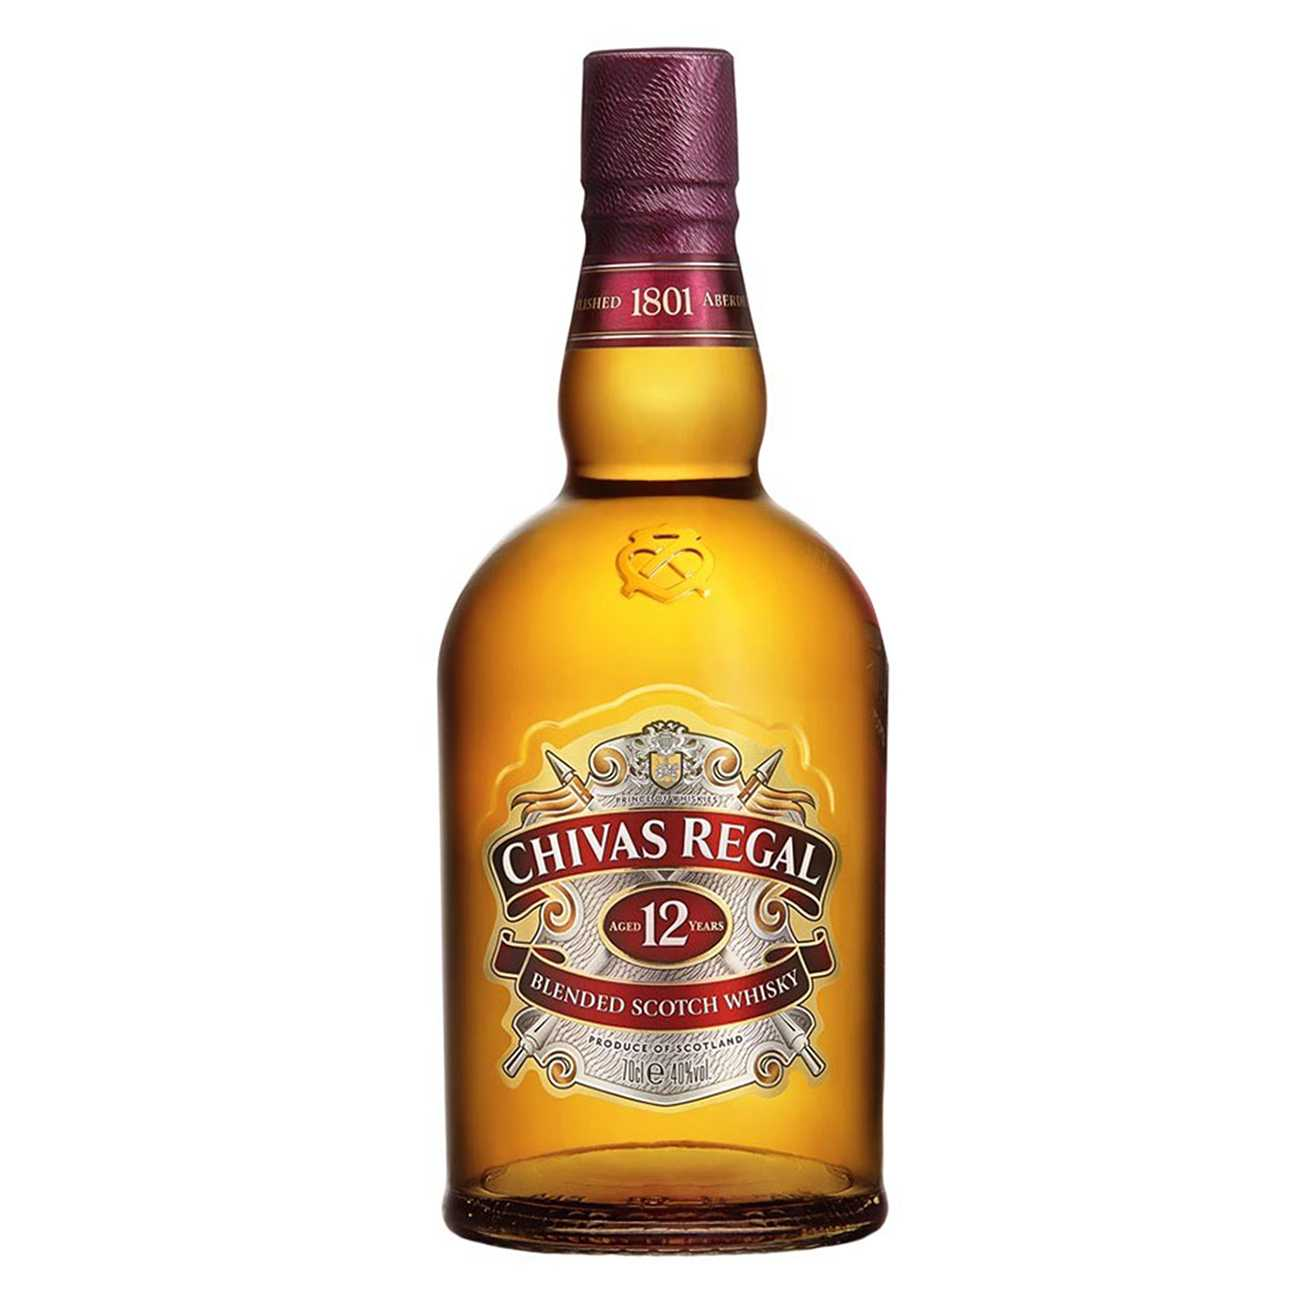 12y In Globe-Trotter de la Chivas Regal